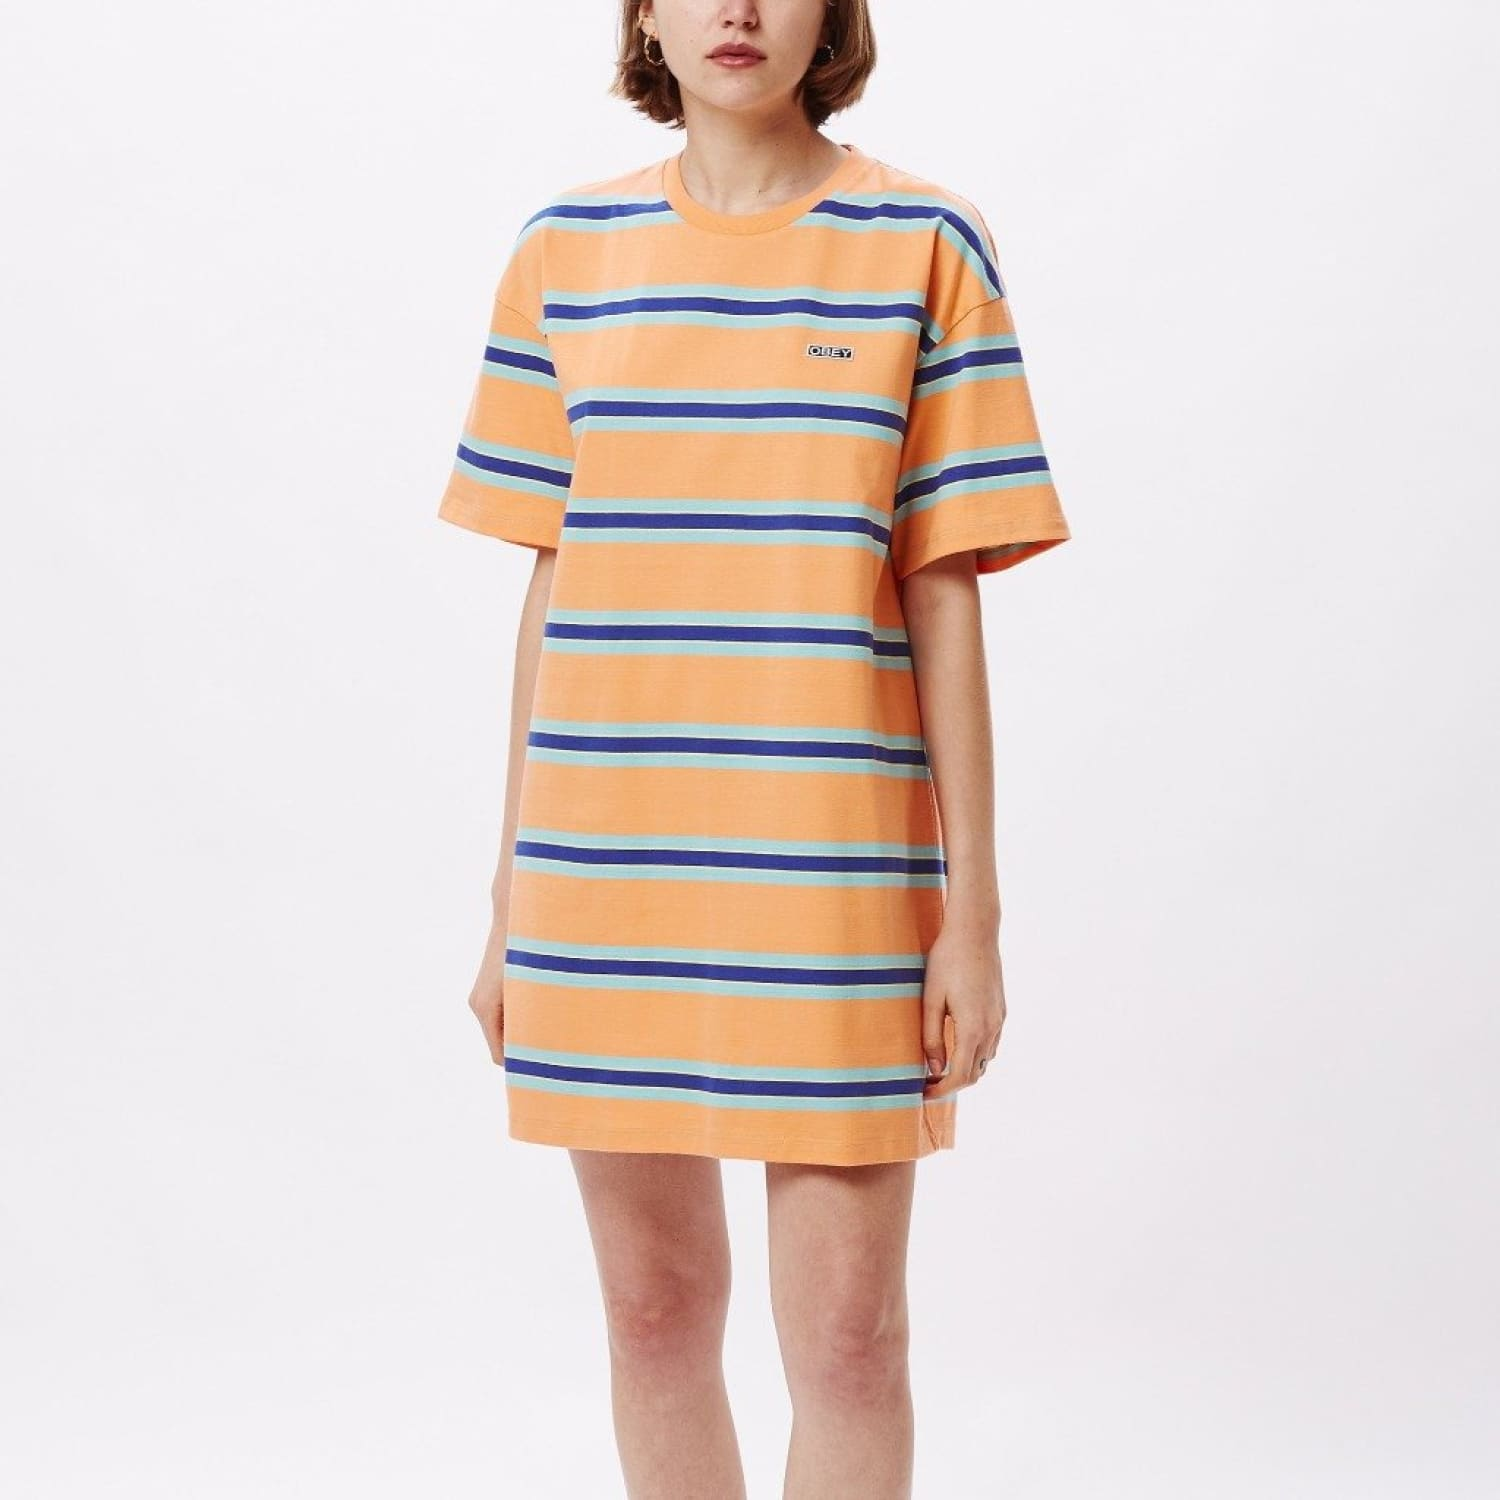 Obey Peri Dress Obey, Obey Dress, Striped Summer, Summer